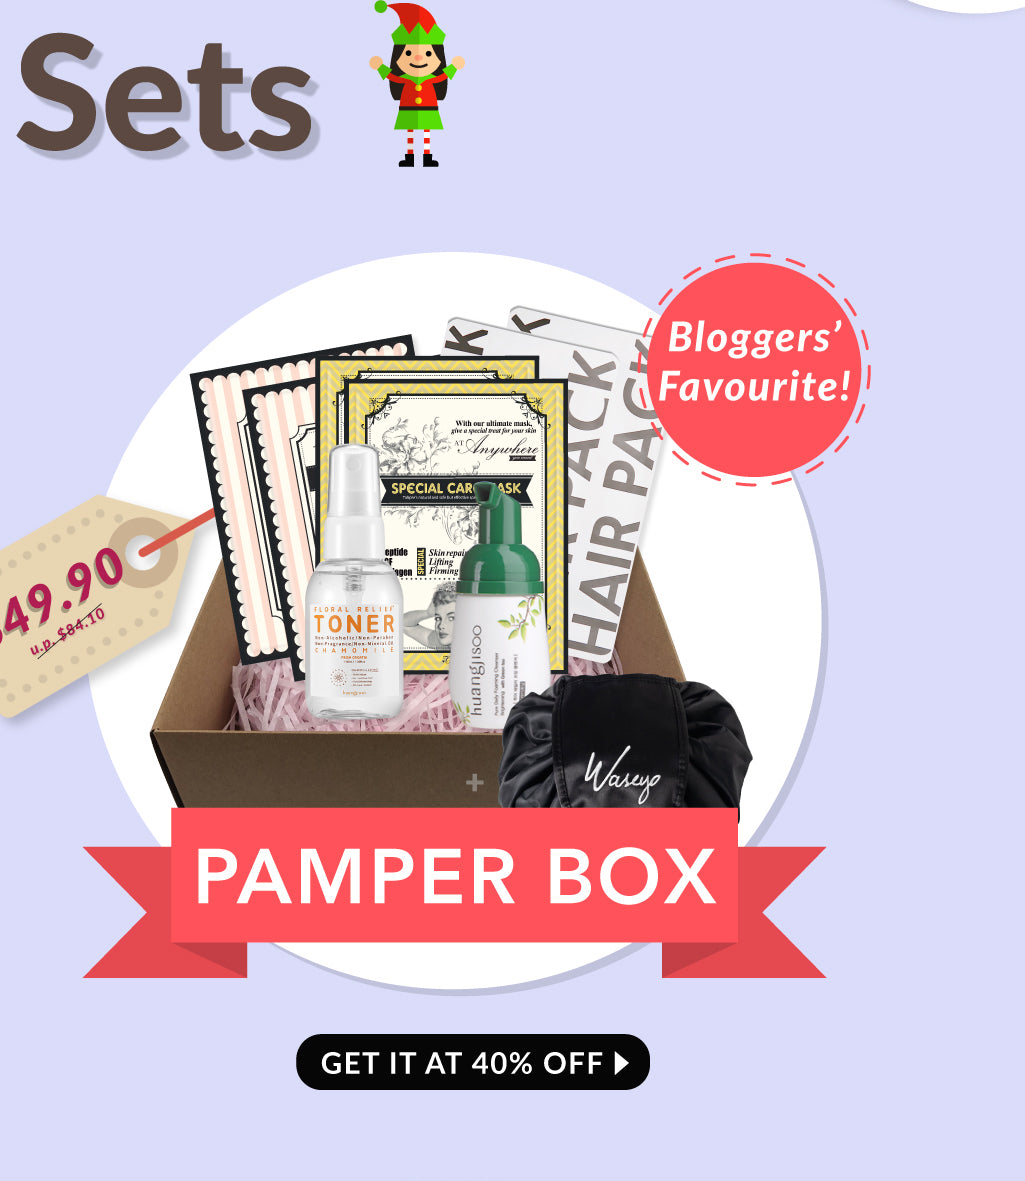 Pamper Box!